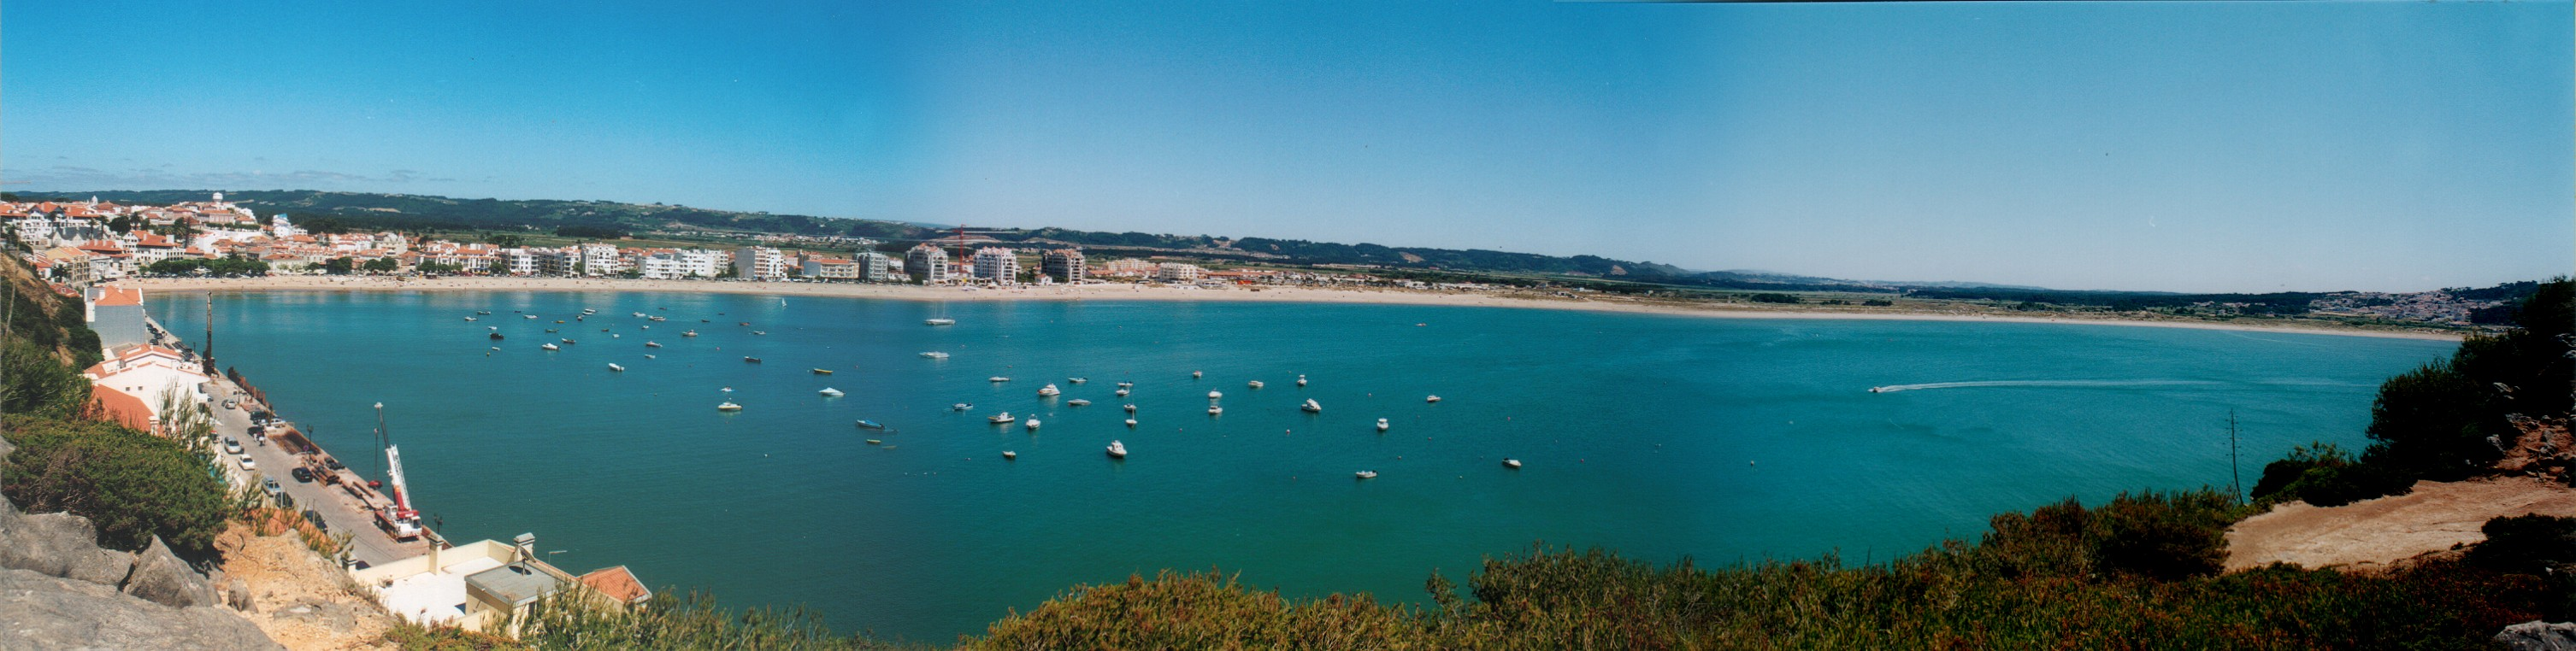 Favori Plage de S.Martinho do Porto - le jardin du portugal DH14